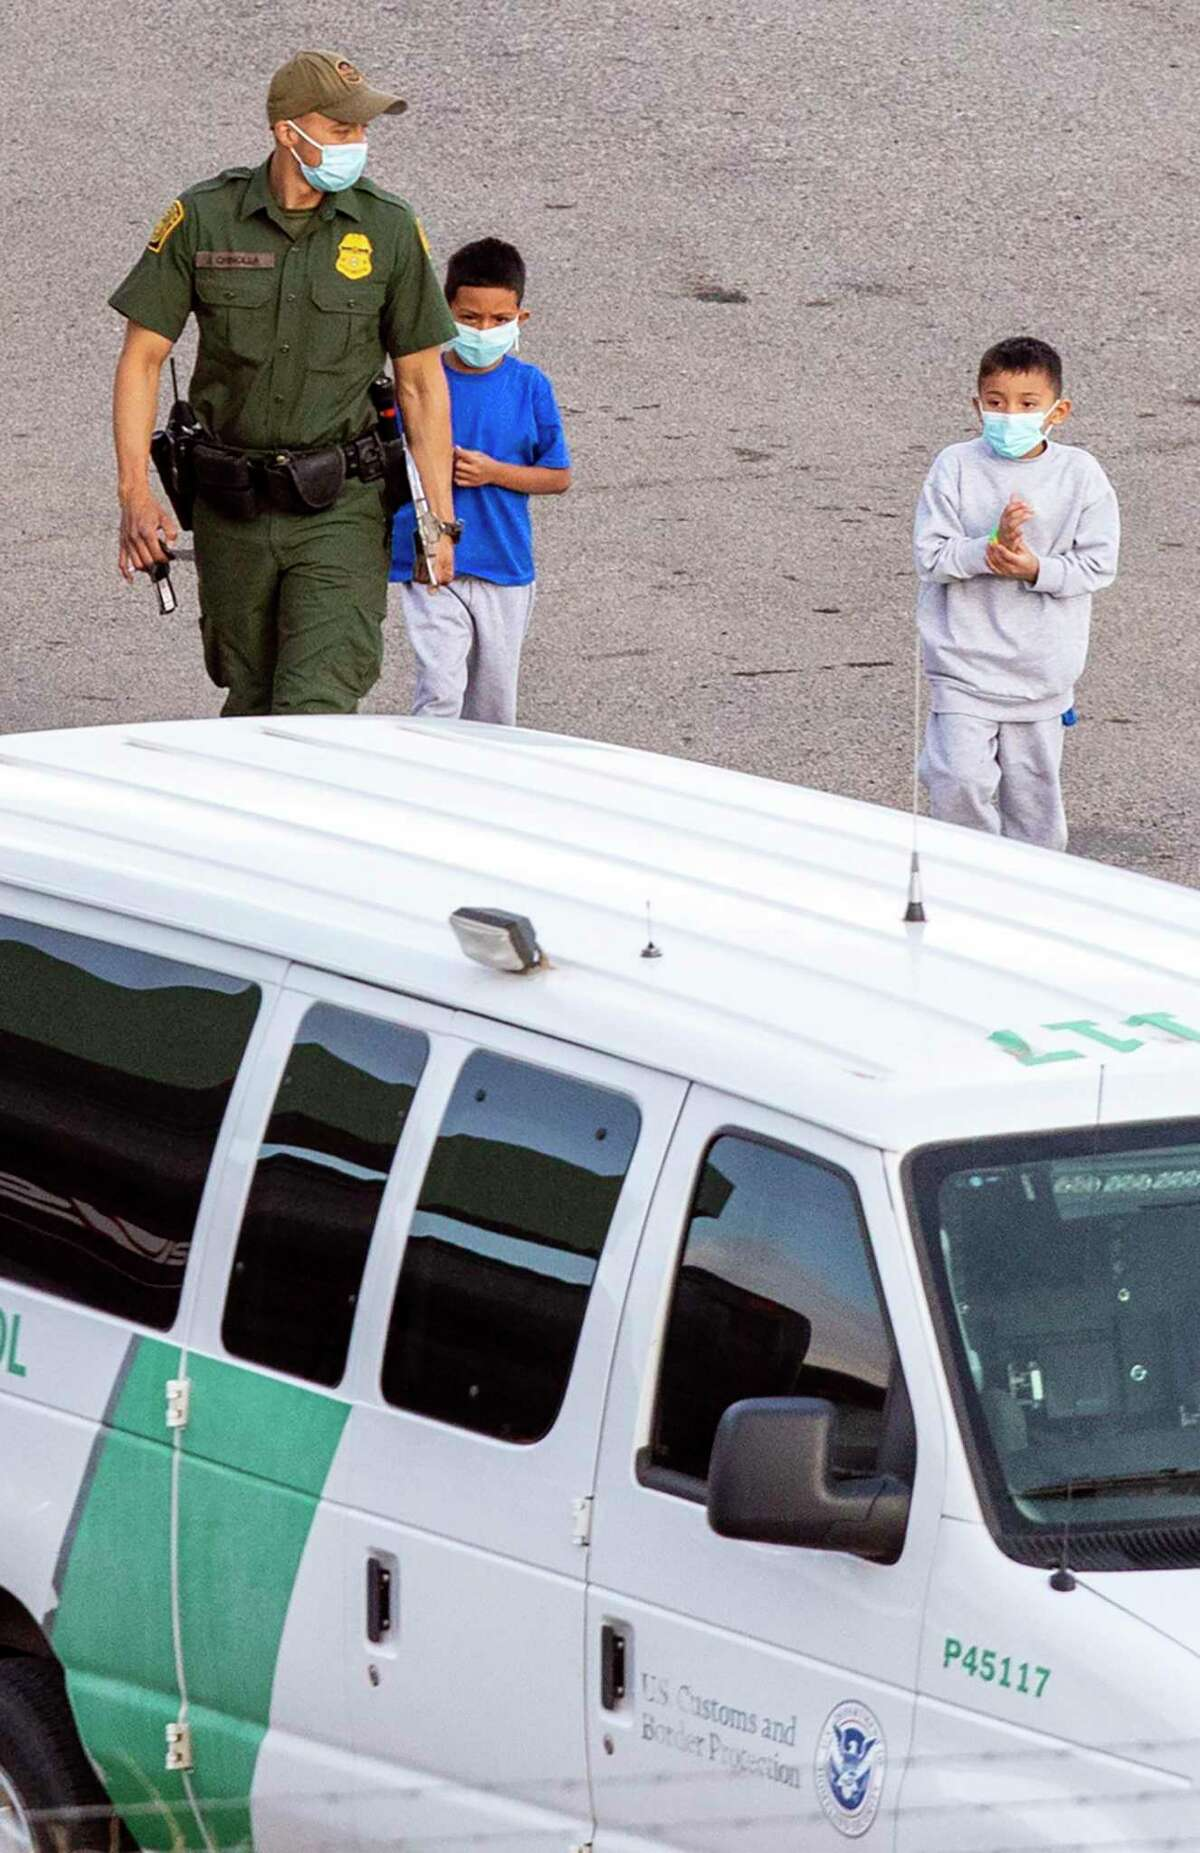 The Customs and Border Patrol processing center in El Paso holds underage and unaccompanied migrant children-male and female,. Two young migrant boys are shown being escorted to a nearby van.